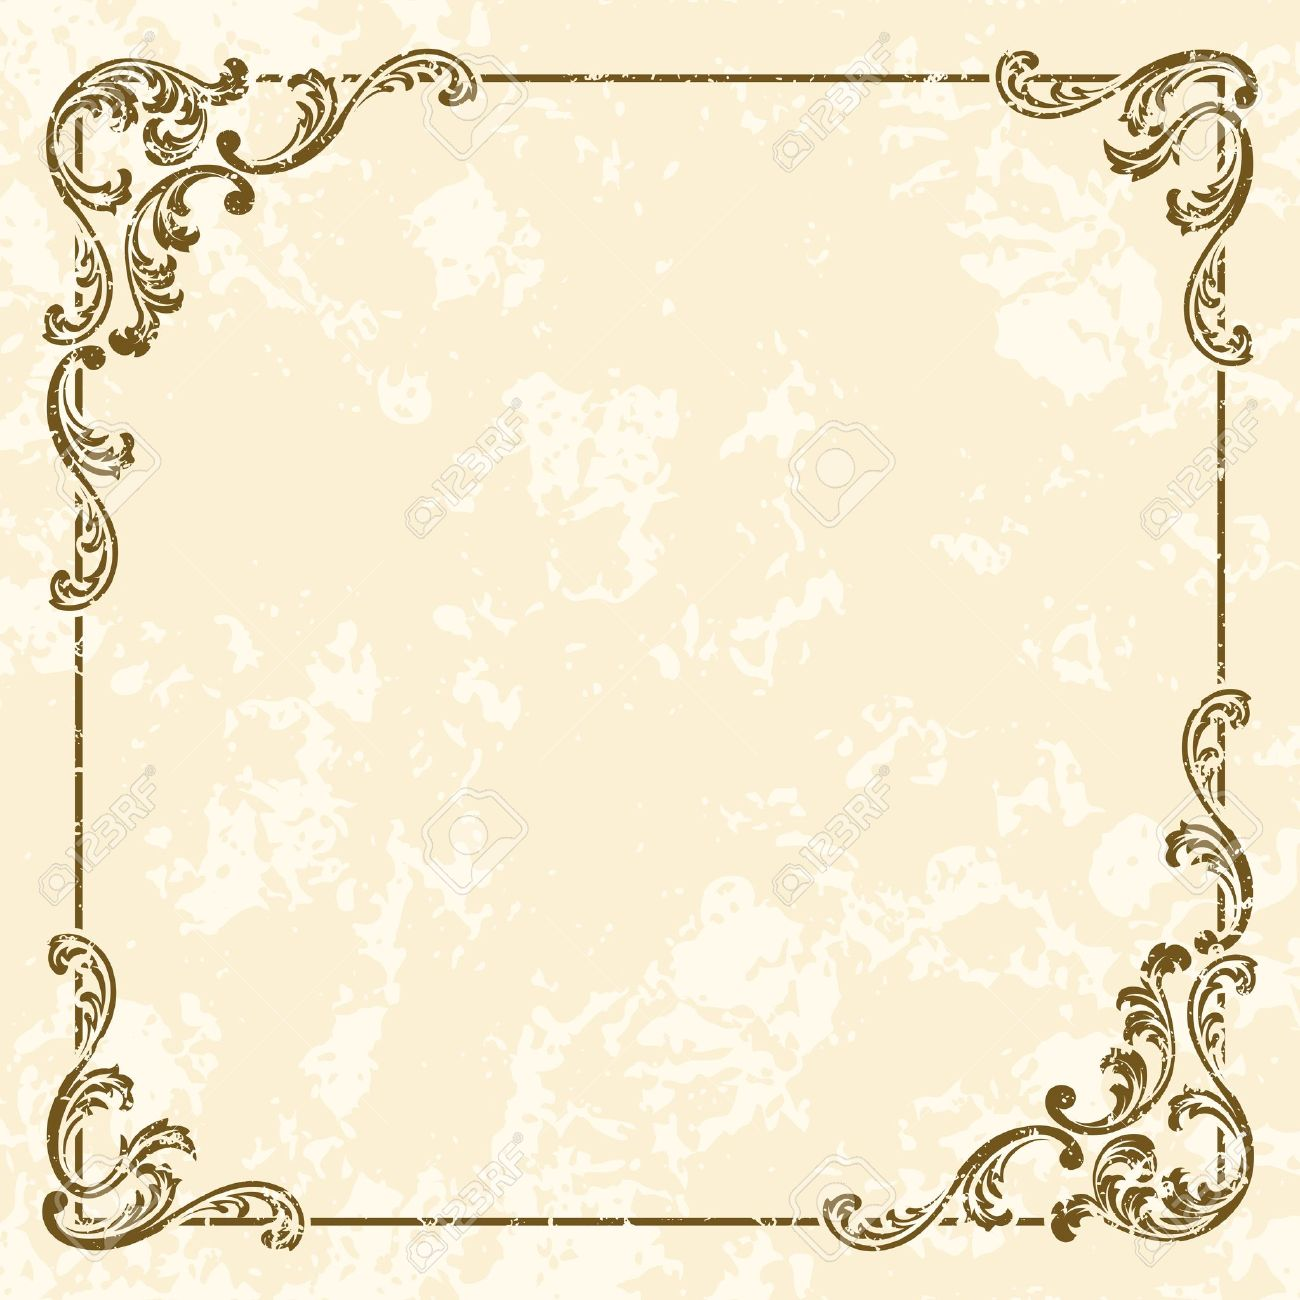 grungy sepia tone frame inspired by victorian era designs